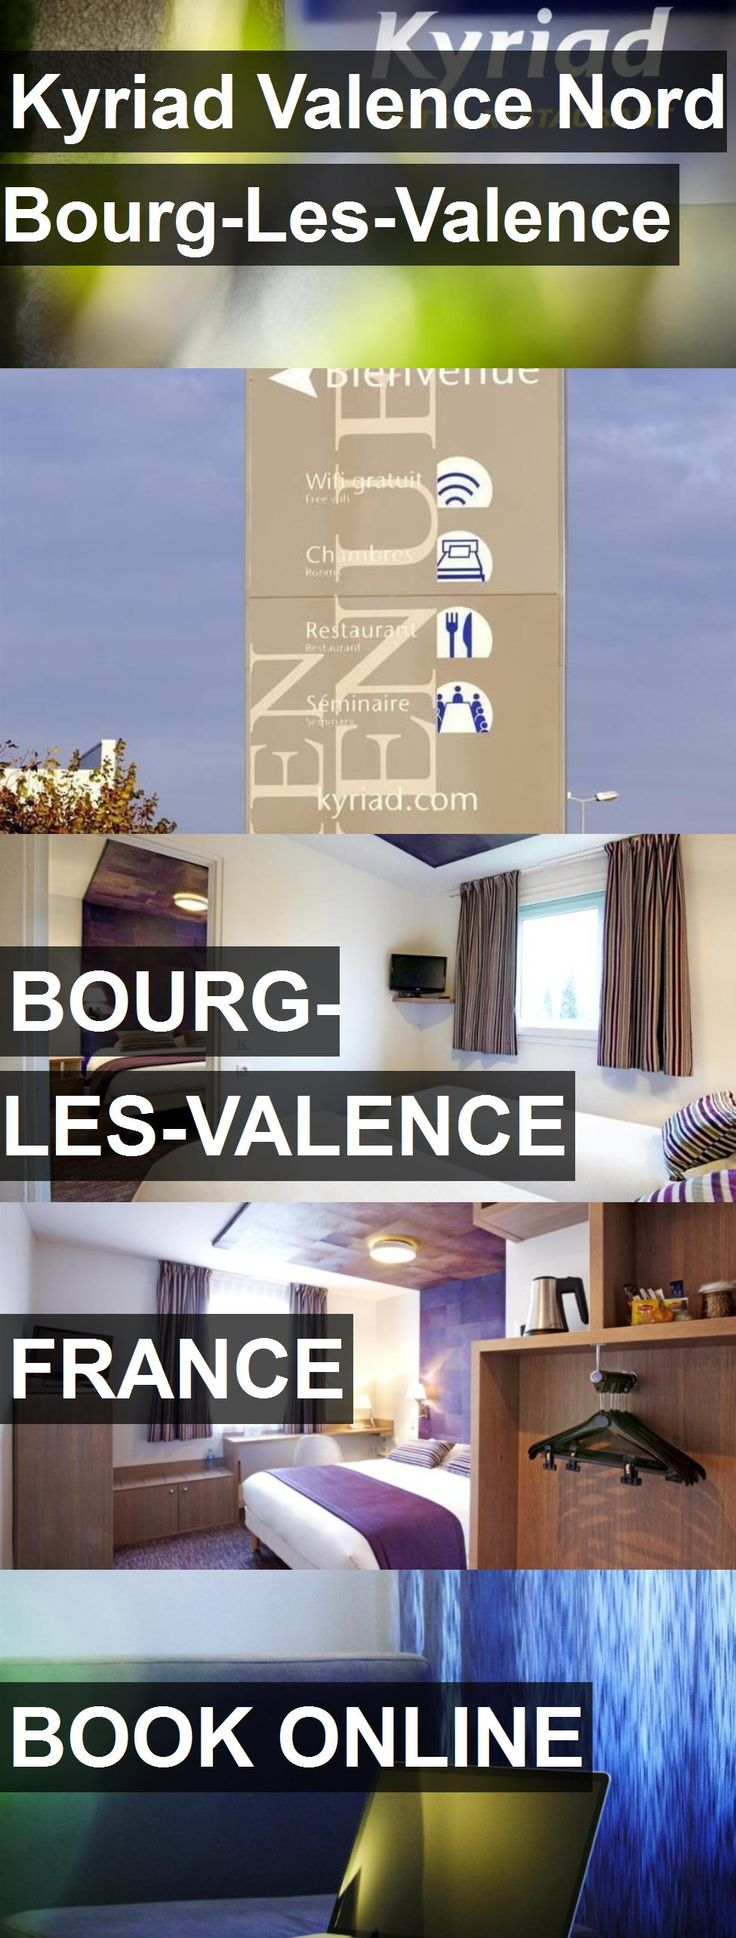 Hotel Kyriad Valence Nord Bourg-Les-Valence in Bourg-les-Valence, France. For more information, photos, reviews and best prices please follow the link. #France #Bourg-les-Valence #hotel #travel #vacation